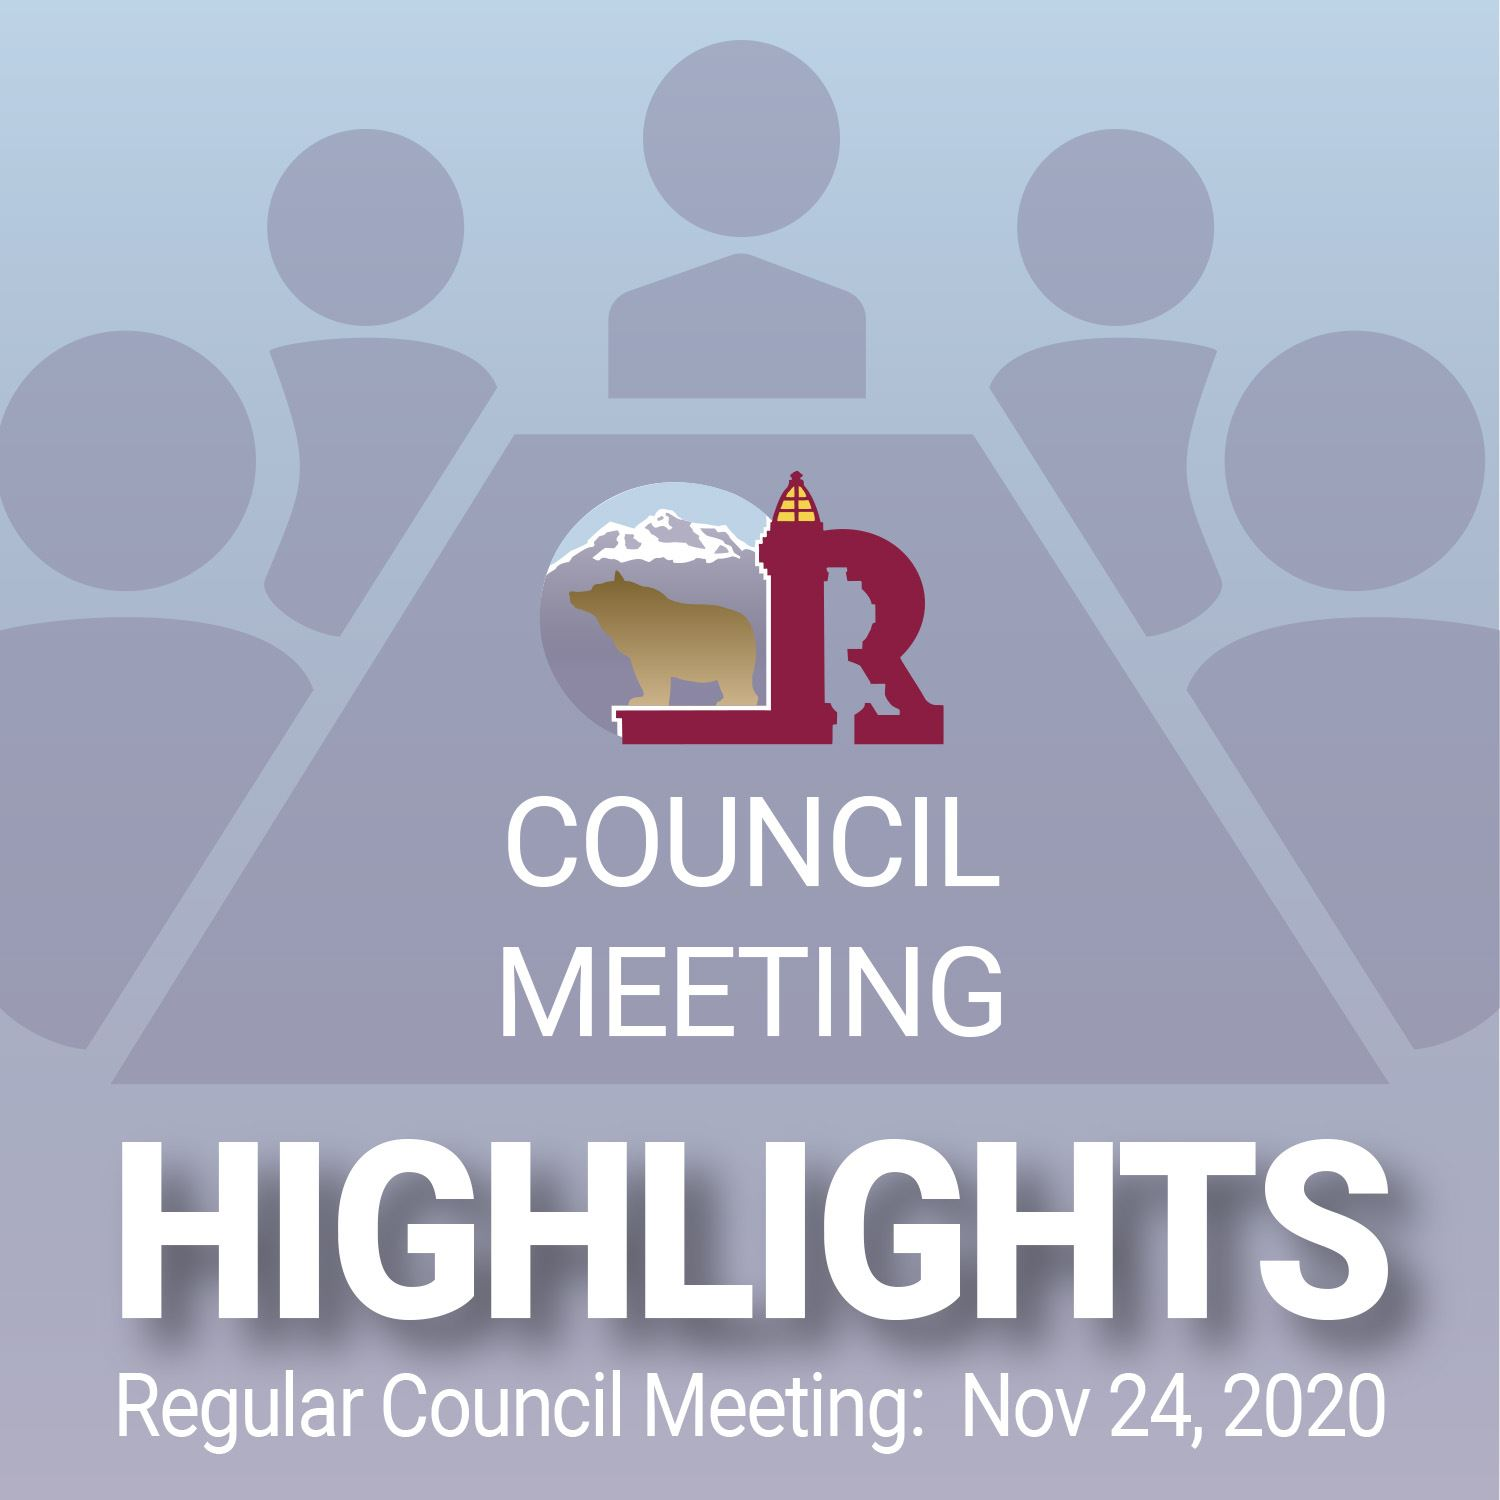 Council Highlights_2020-11-24